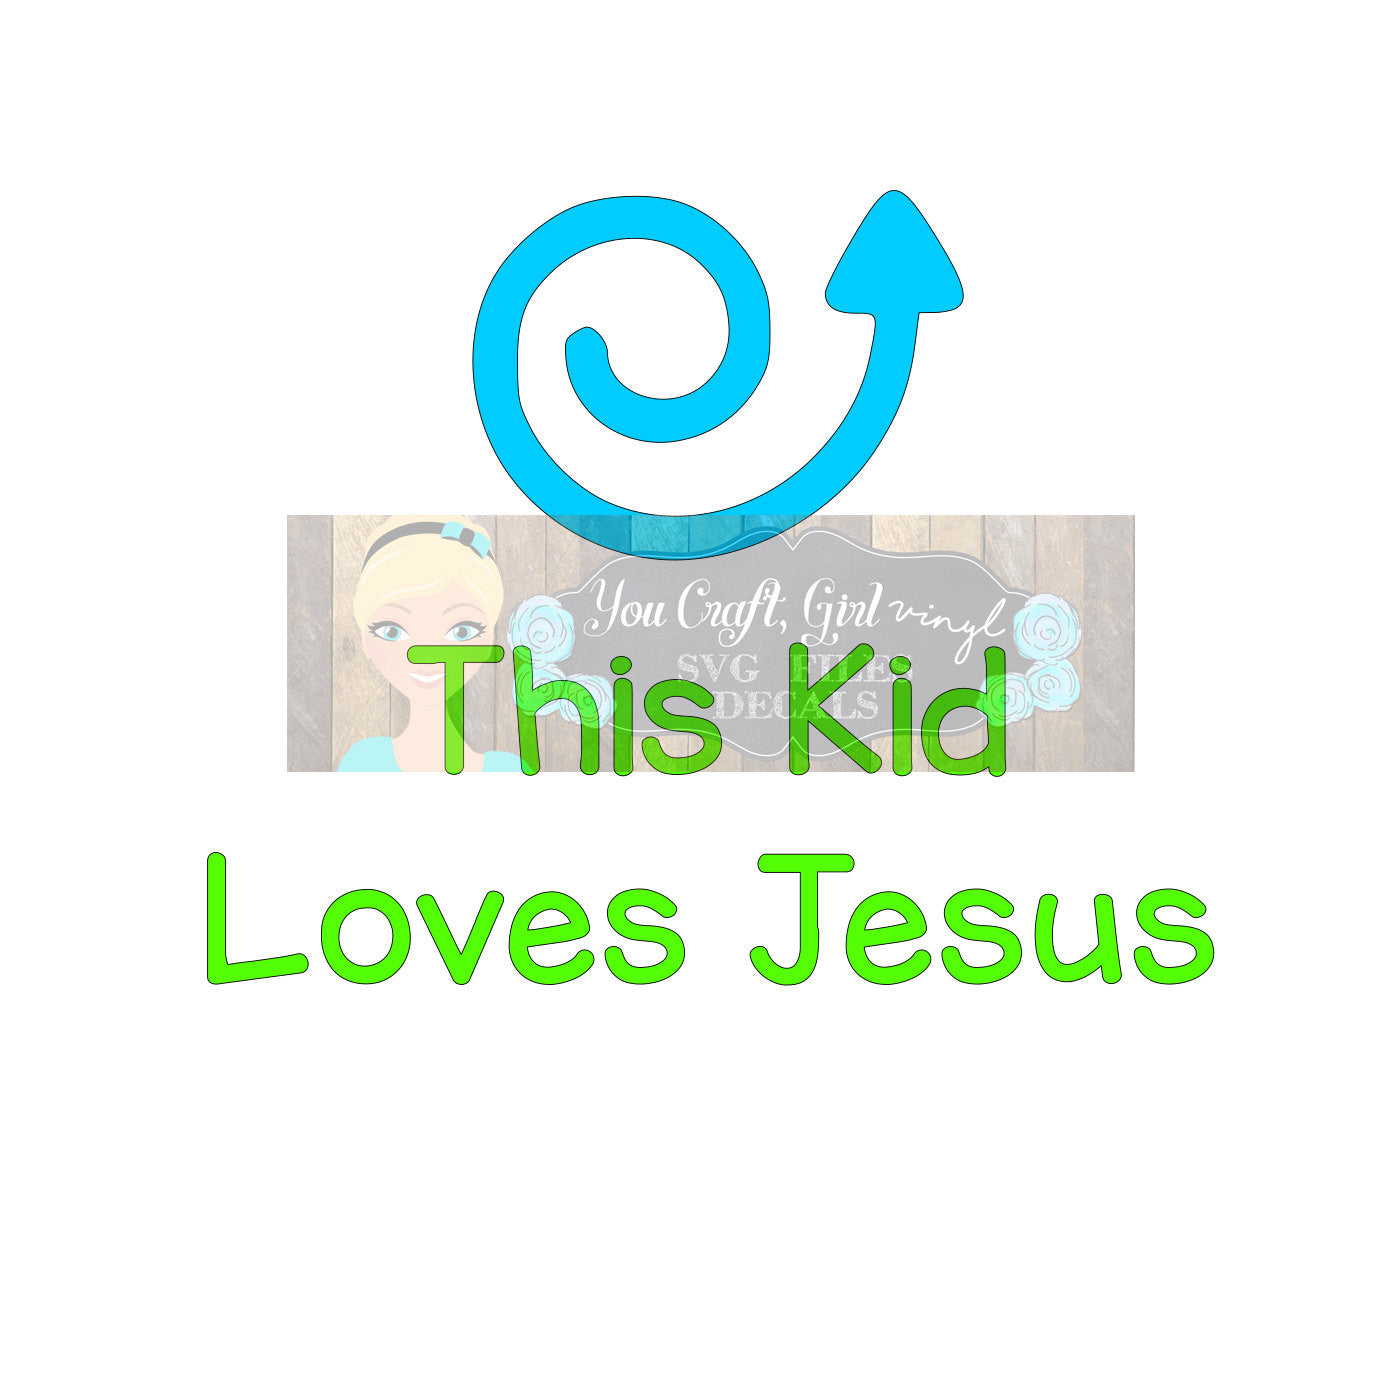 This Kid Loves Jesus Arrow Svg Dxf   Commercial Use SVG   tshirt svg   Christian SVG   Religious decal   Love Jesus   child clothing HTV svg